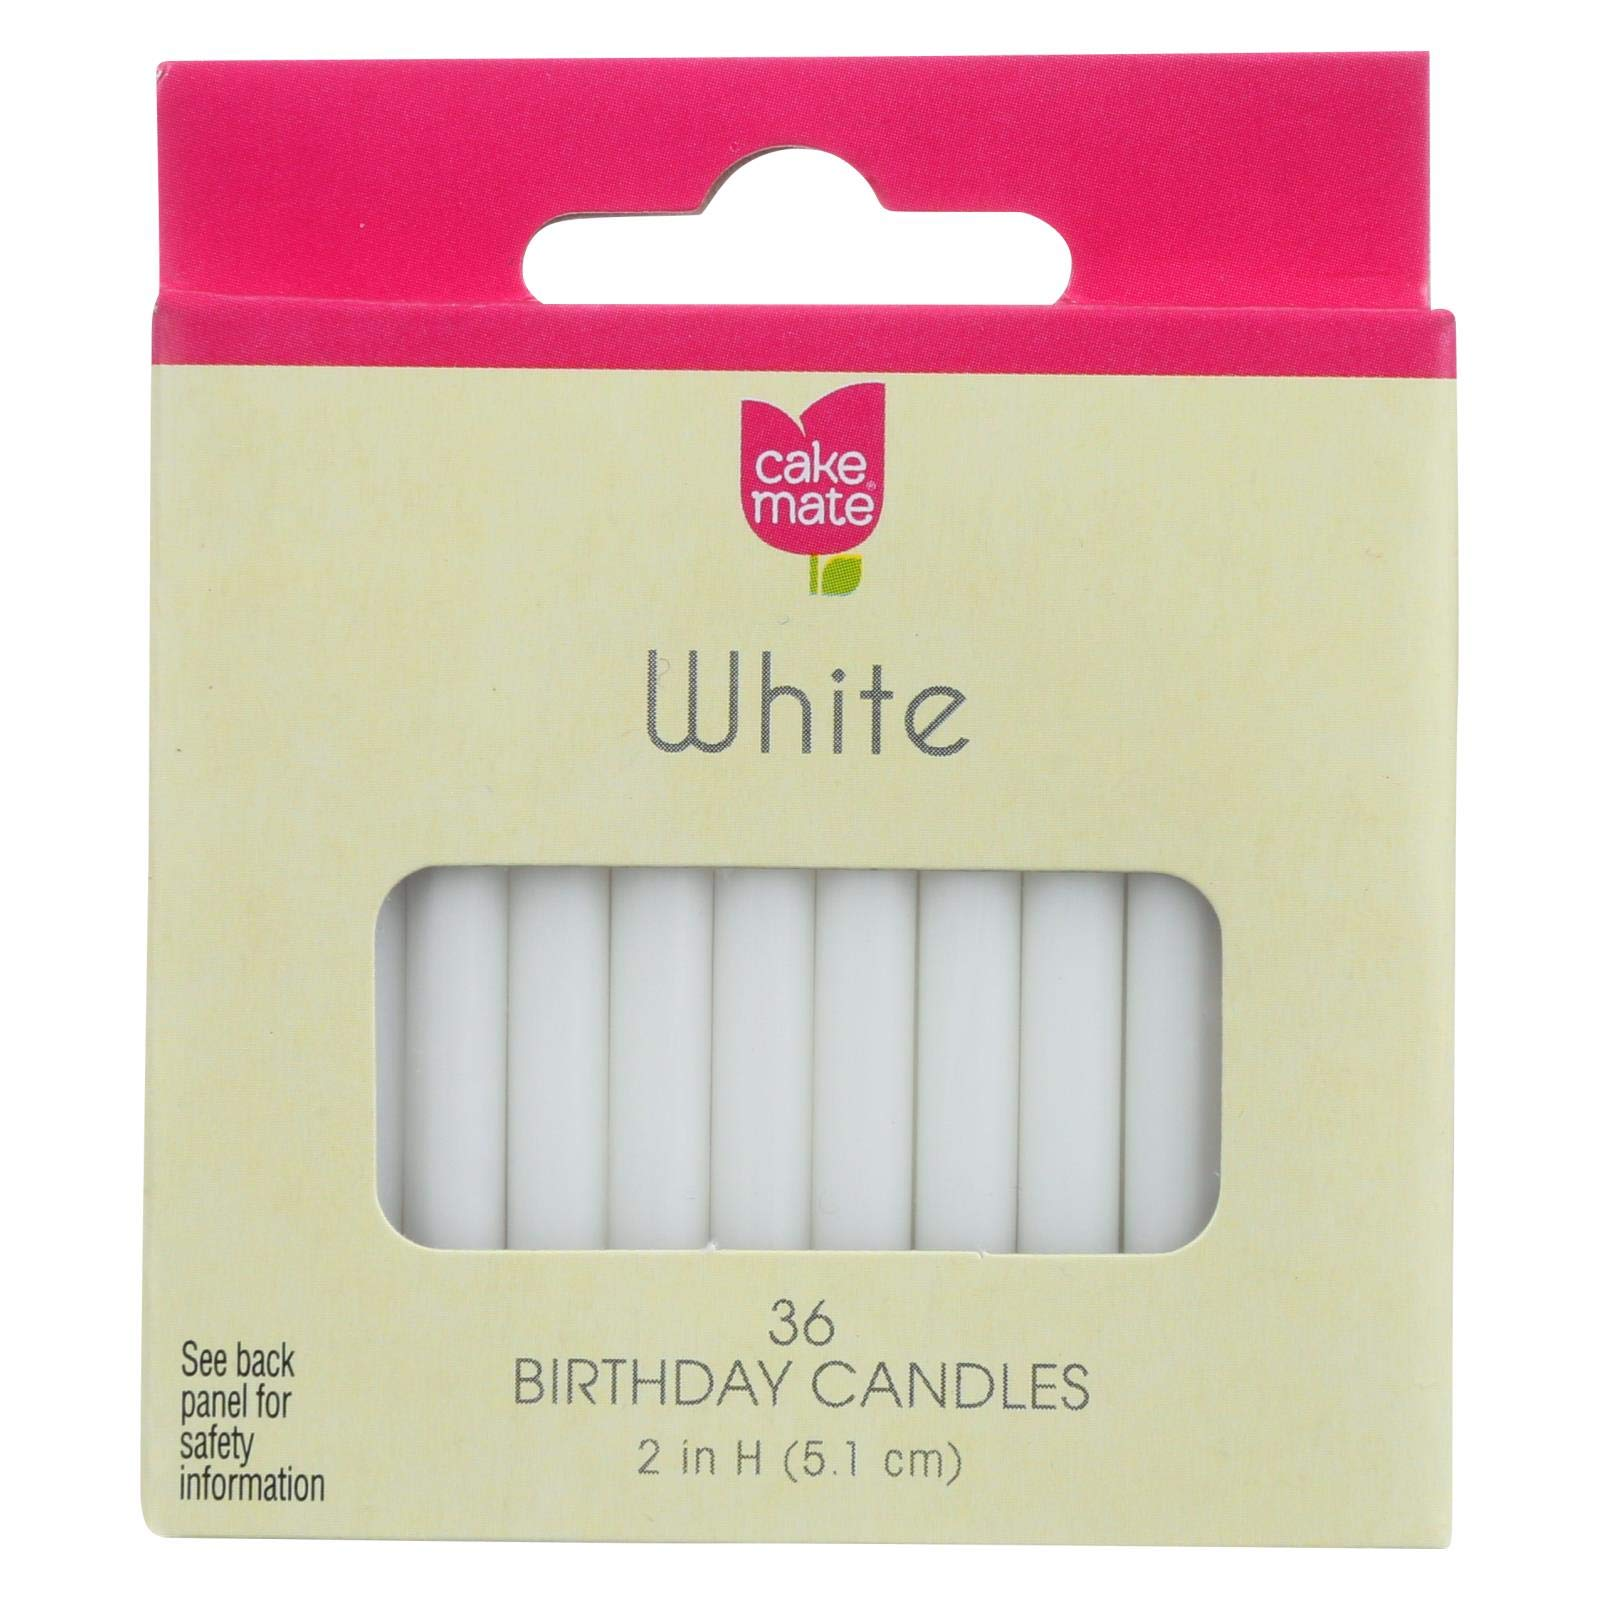 Cake Mate Birthday Party Candles - Round - White - 2 in x 3/16 in - 36 Count - Case of 12 by Cake Mate